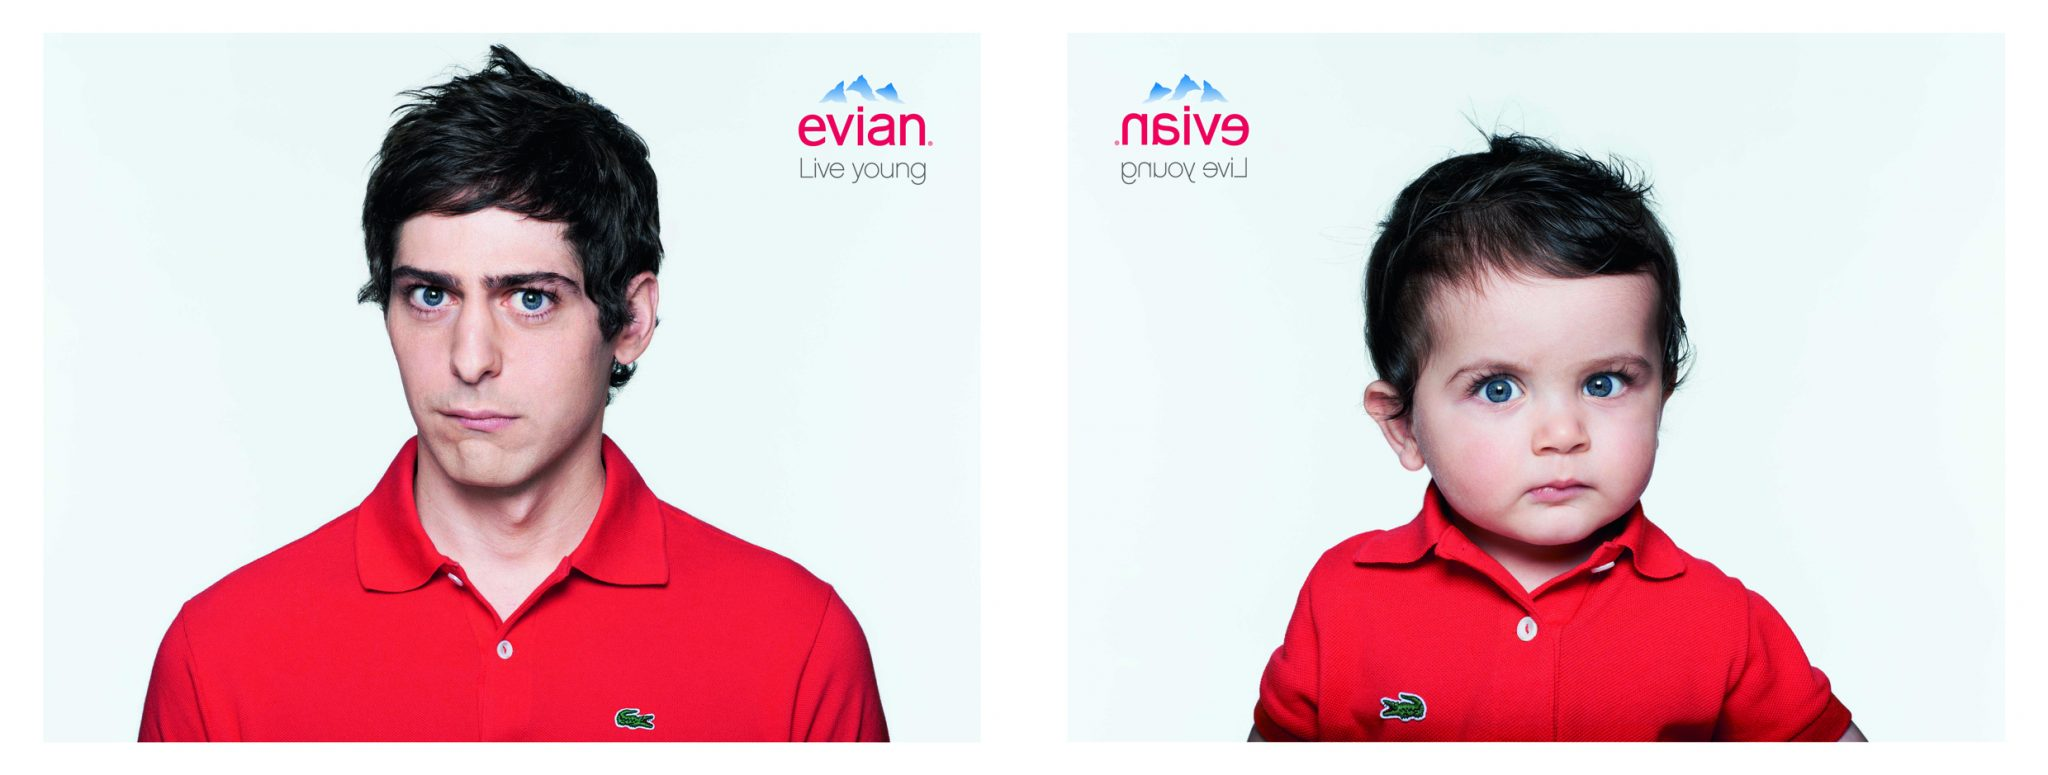 0001-evian-andreasguillaume-4